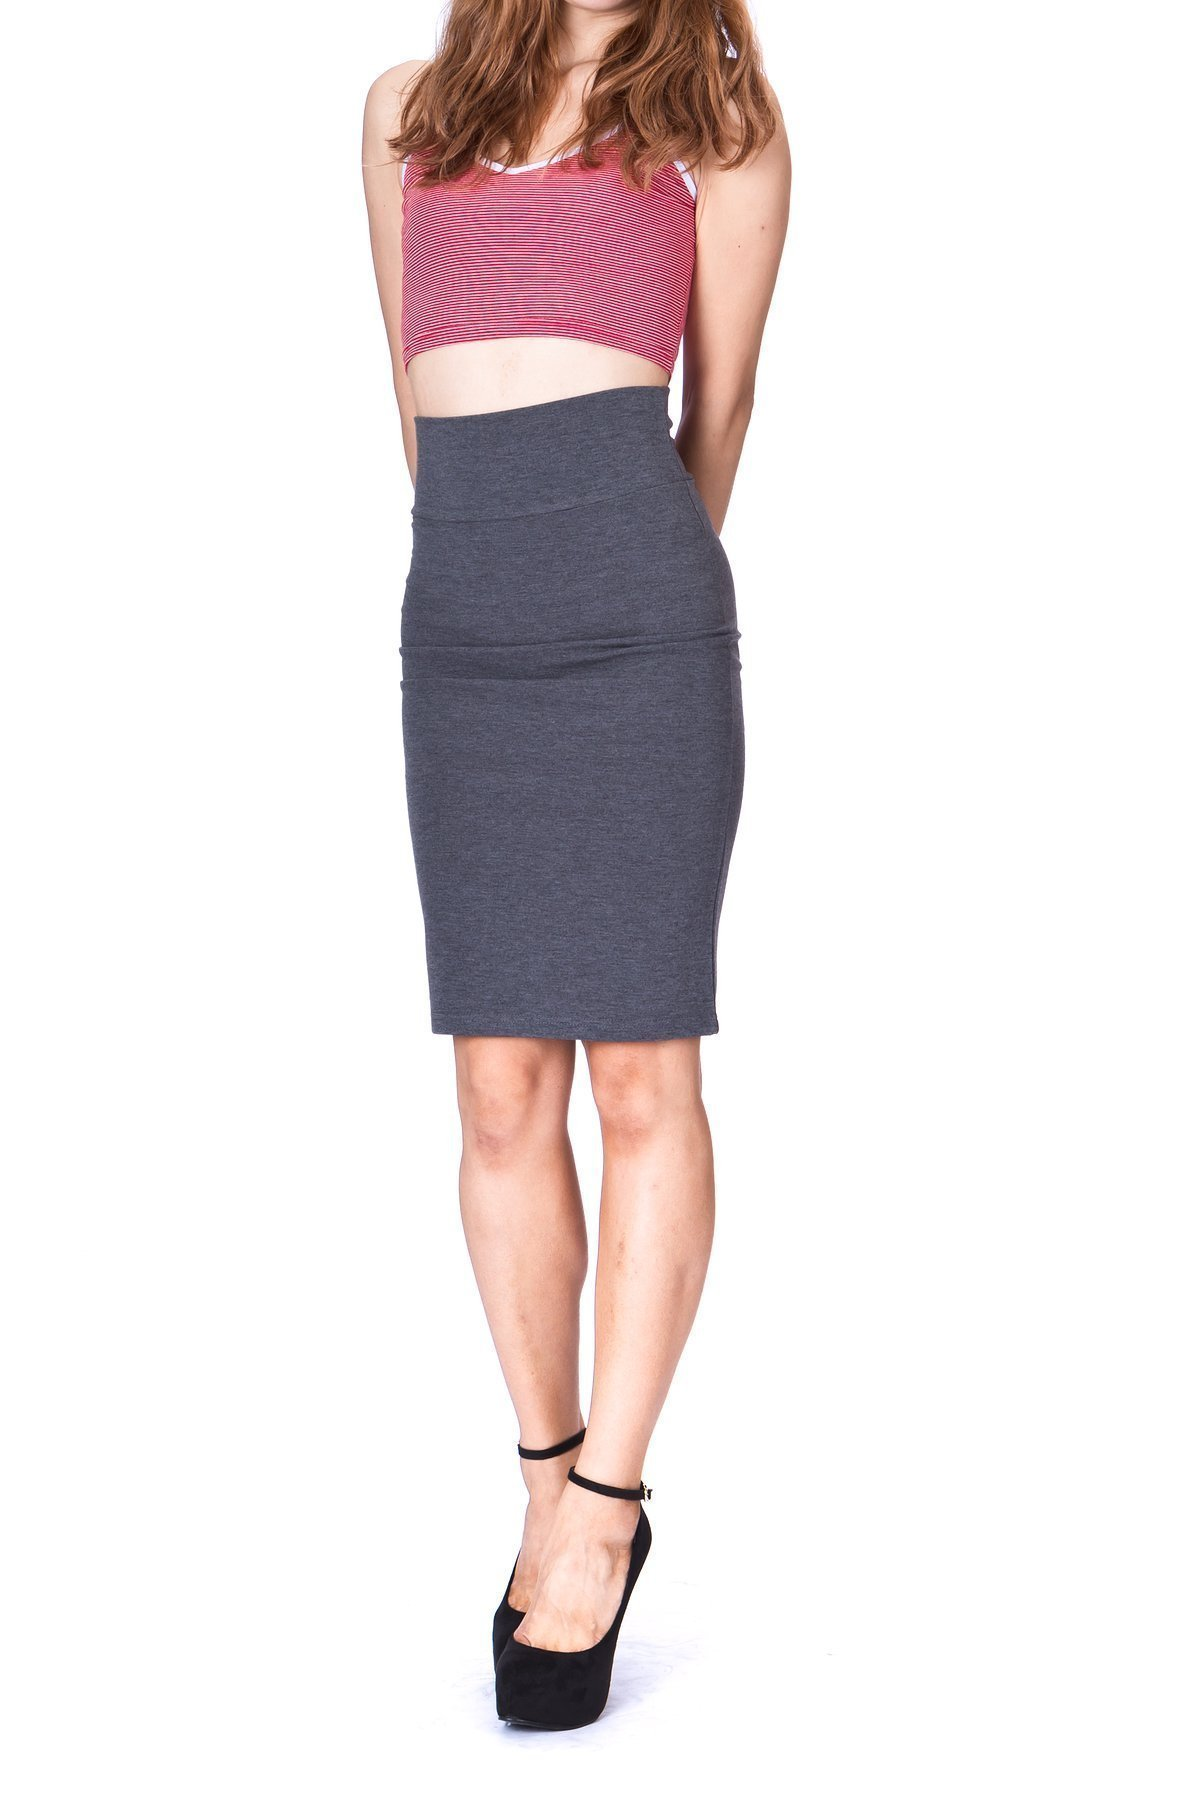 Every Occasion Stretch Pull on Wide High Waist Bodycon Pencil Knee Length Midi Skirt Charcoal 1